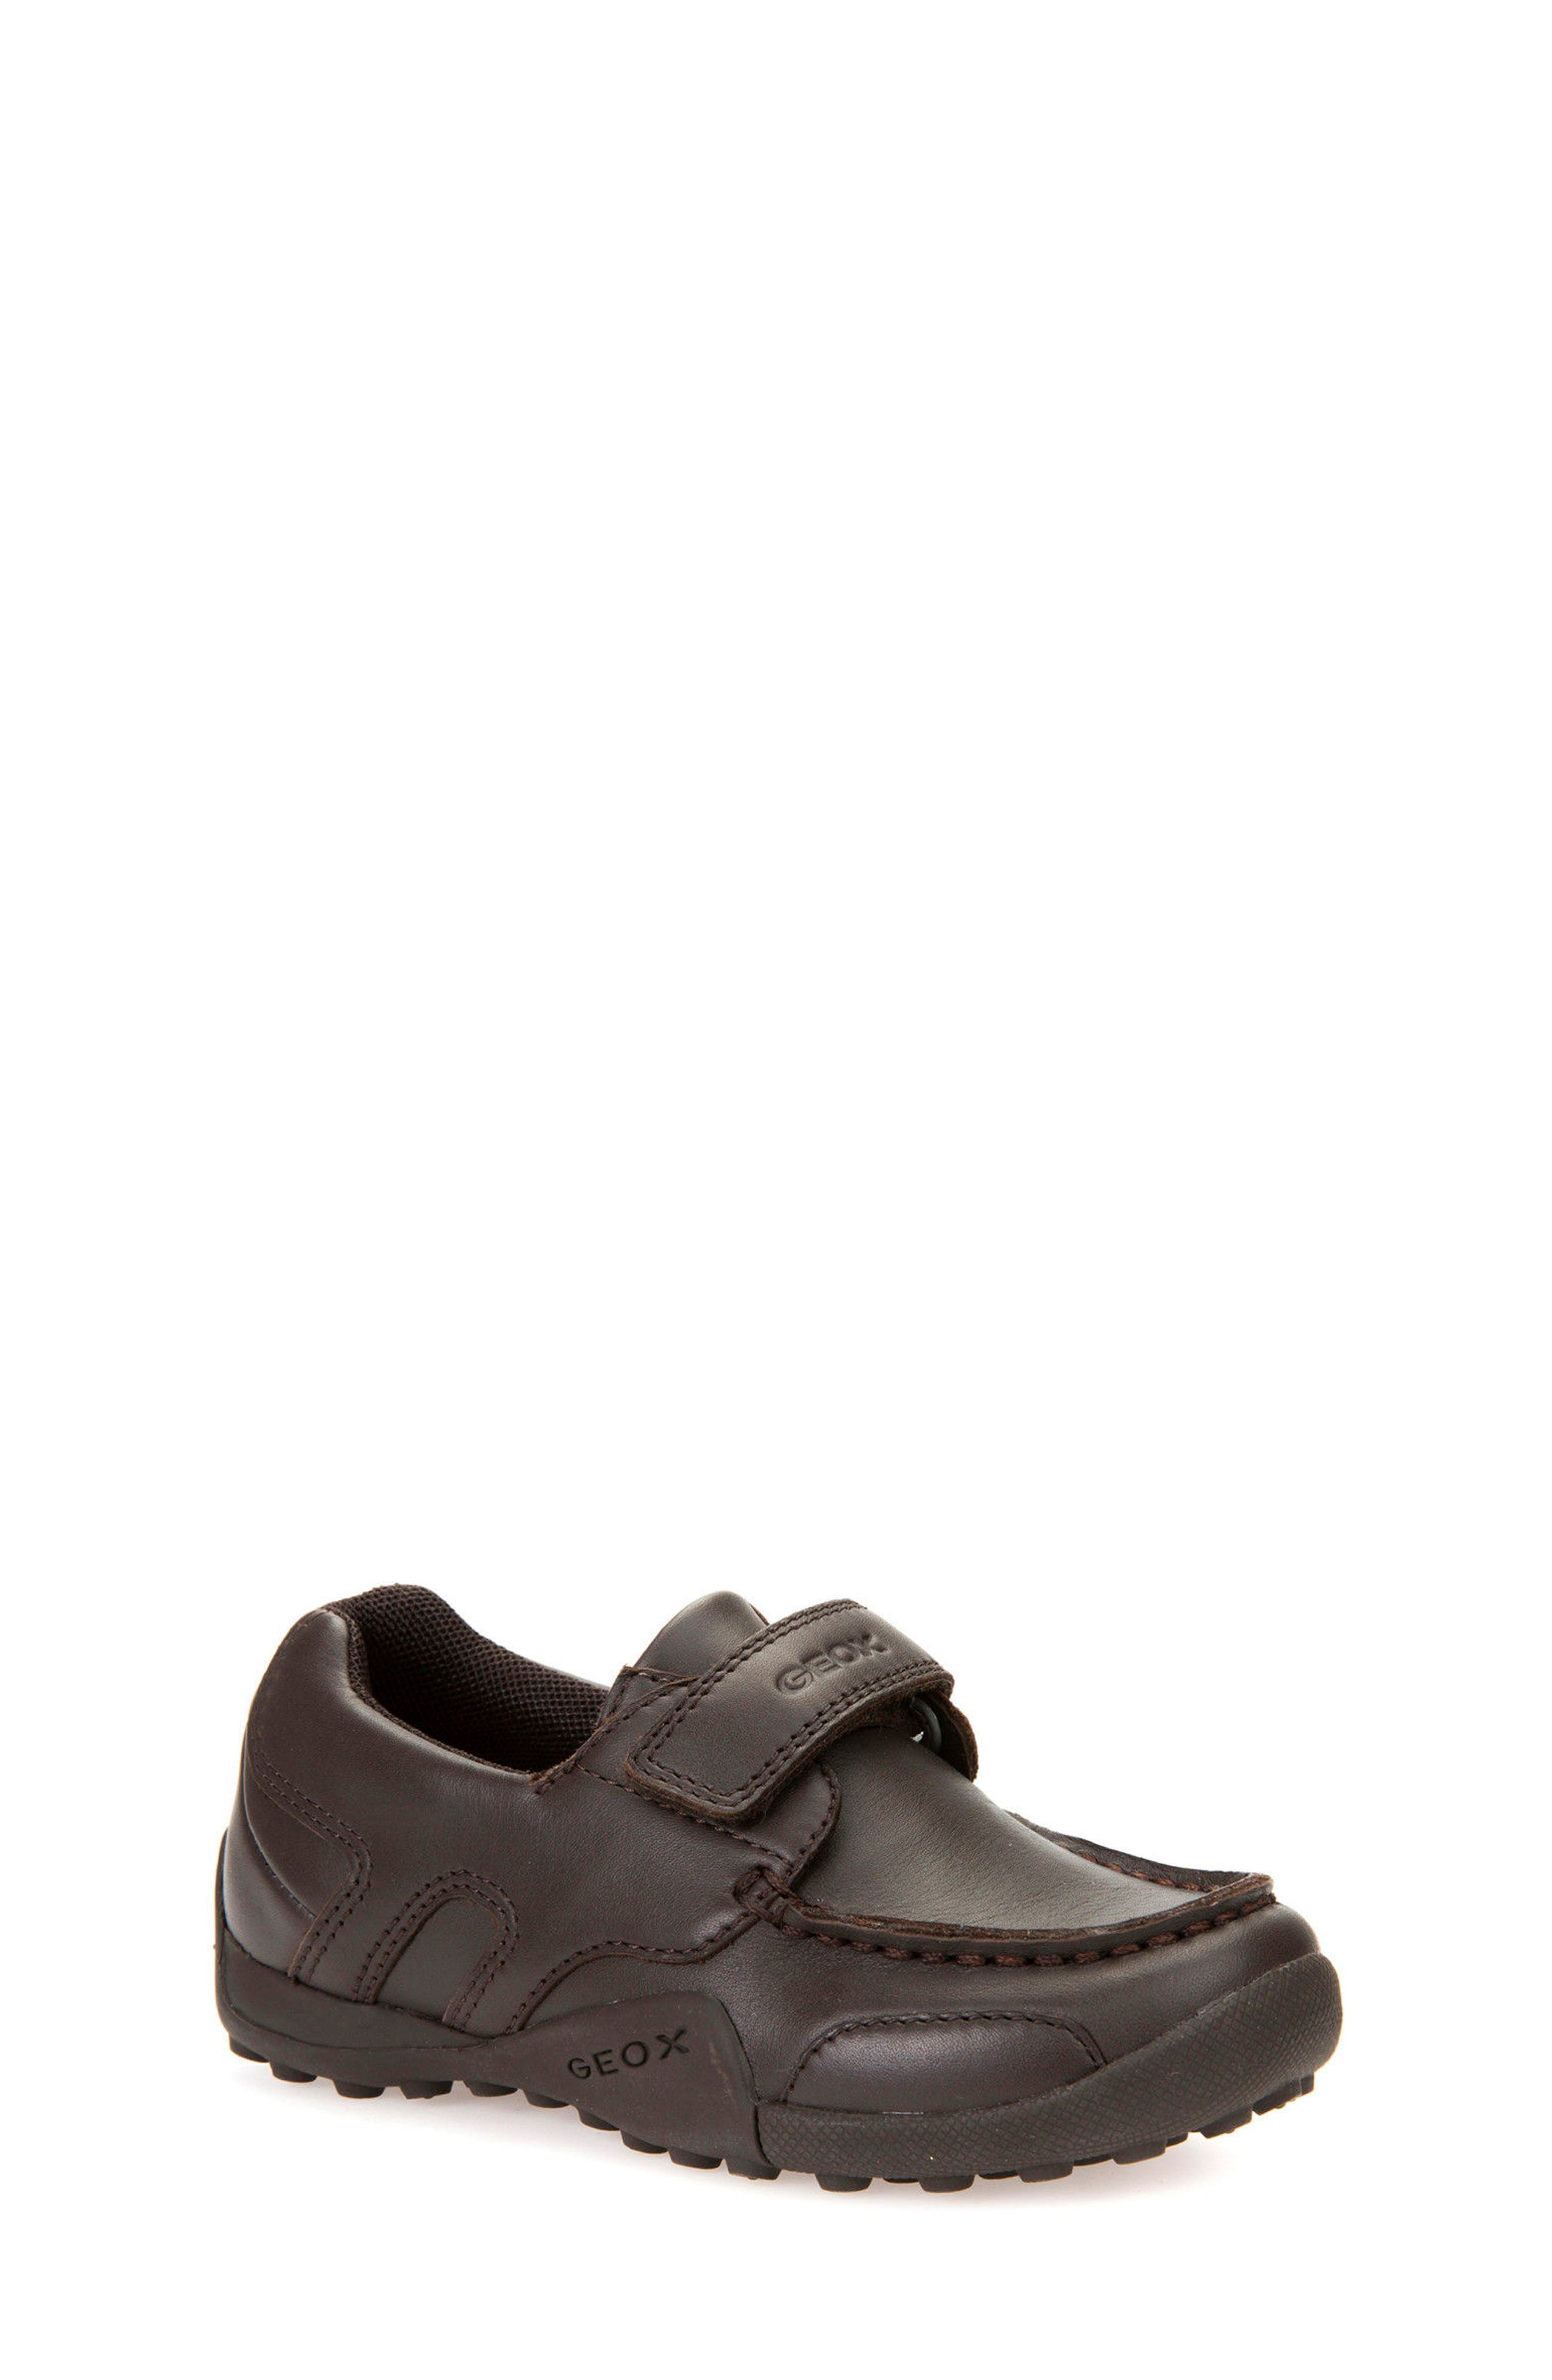 'Snake Moc 2' Leather Loafer,                         Main,                         color, Coffee